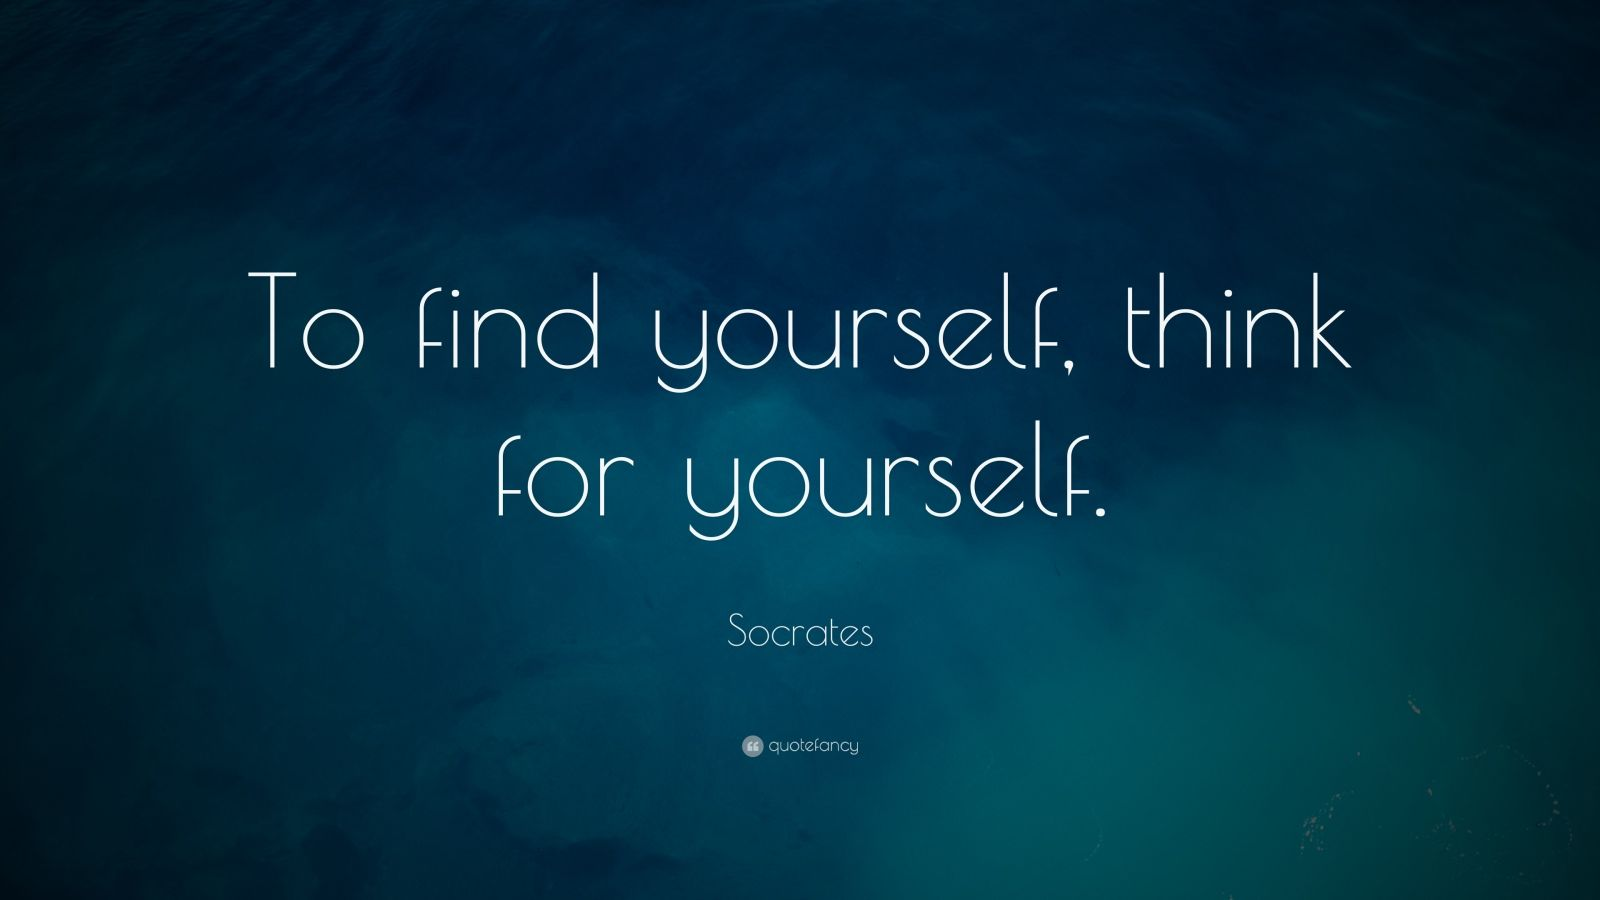 Socrates Think for Yourself Quotes